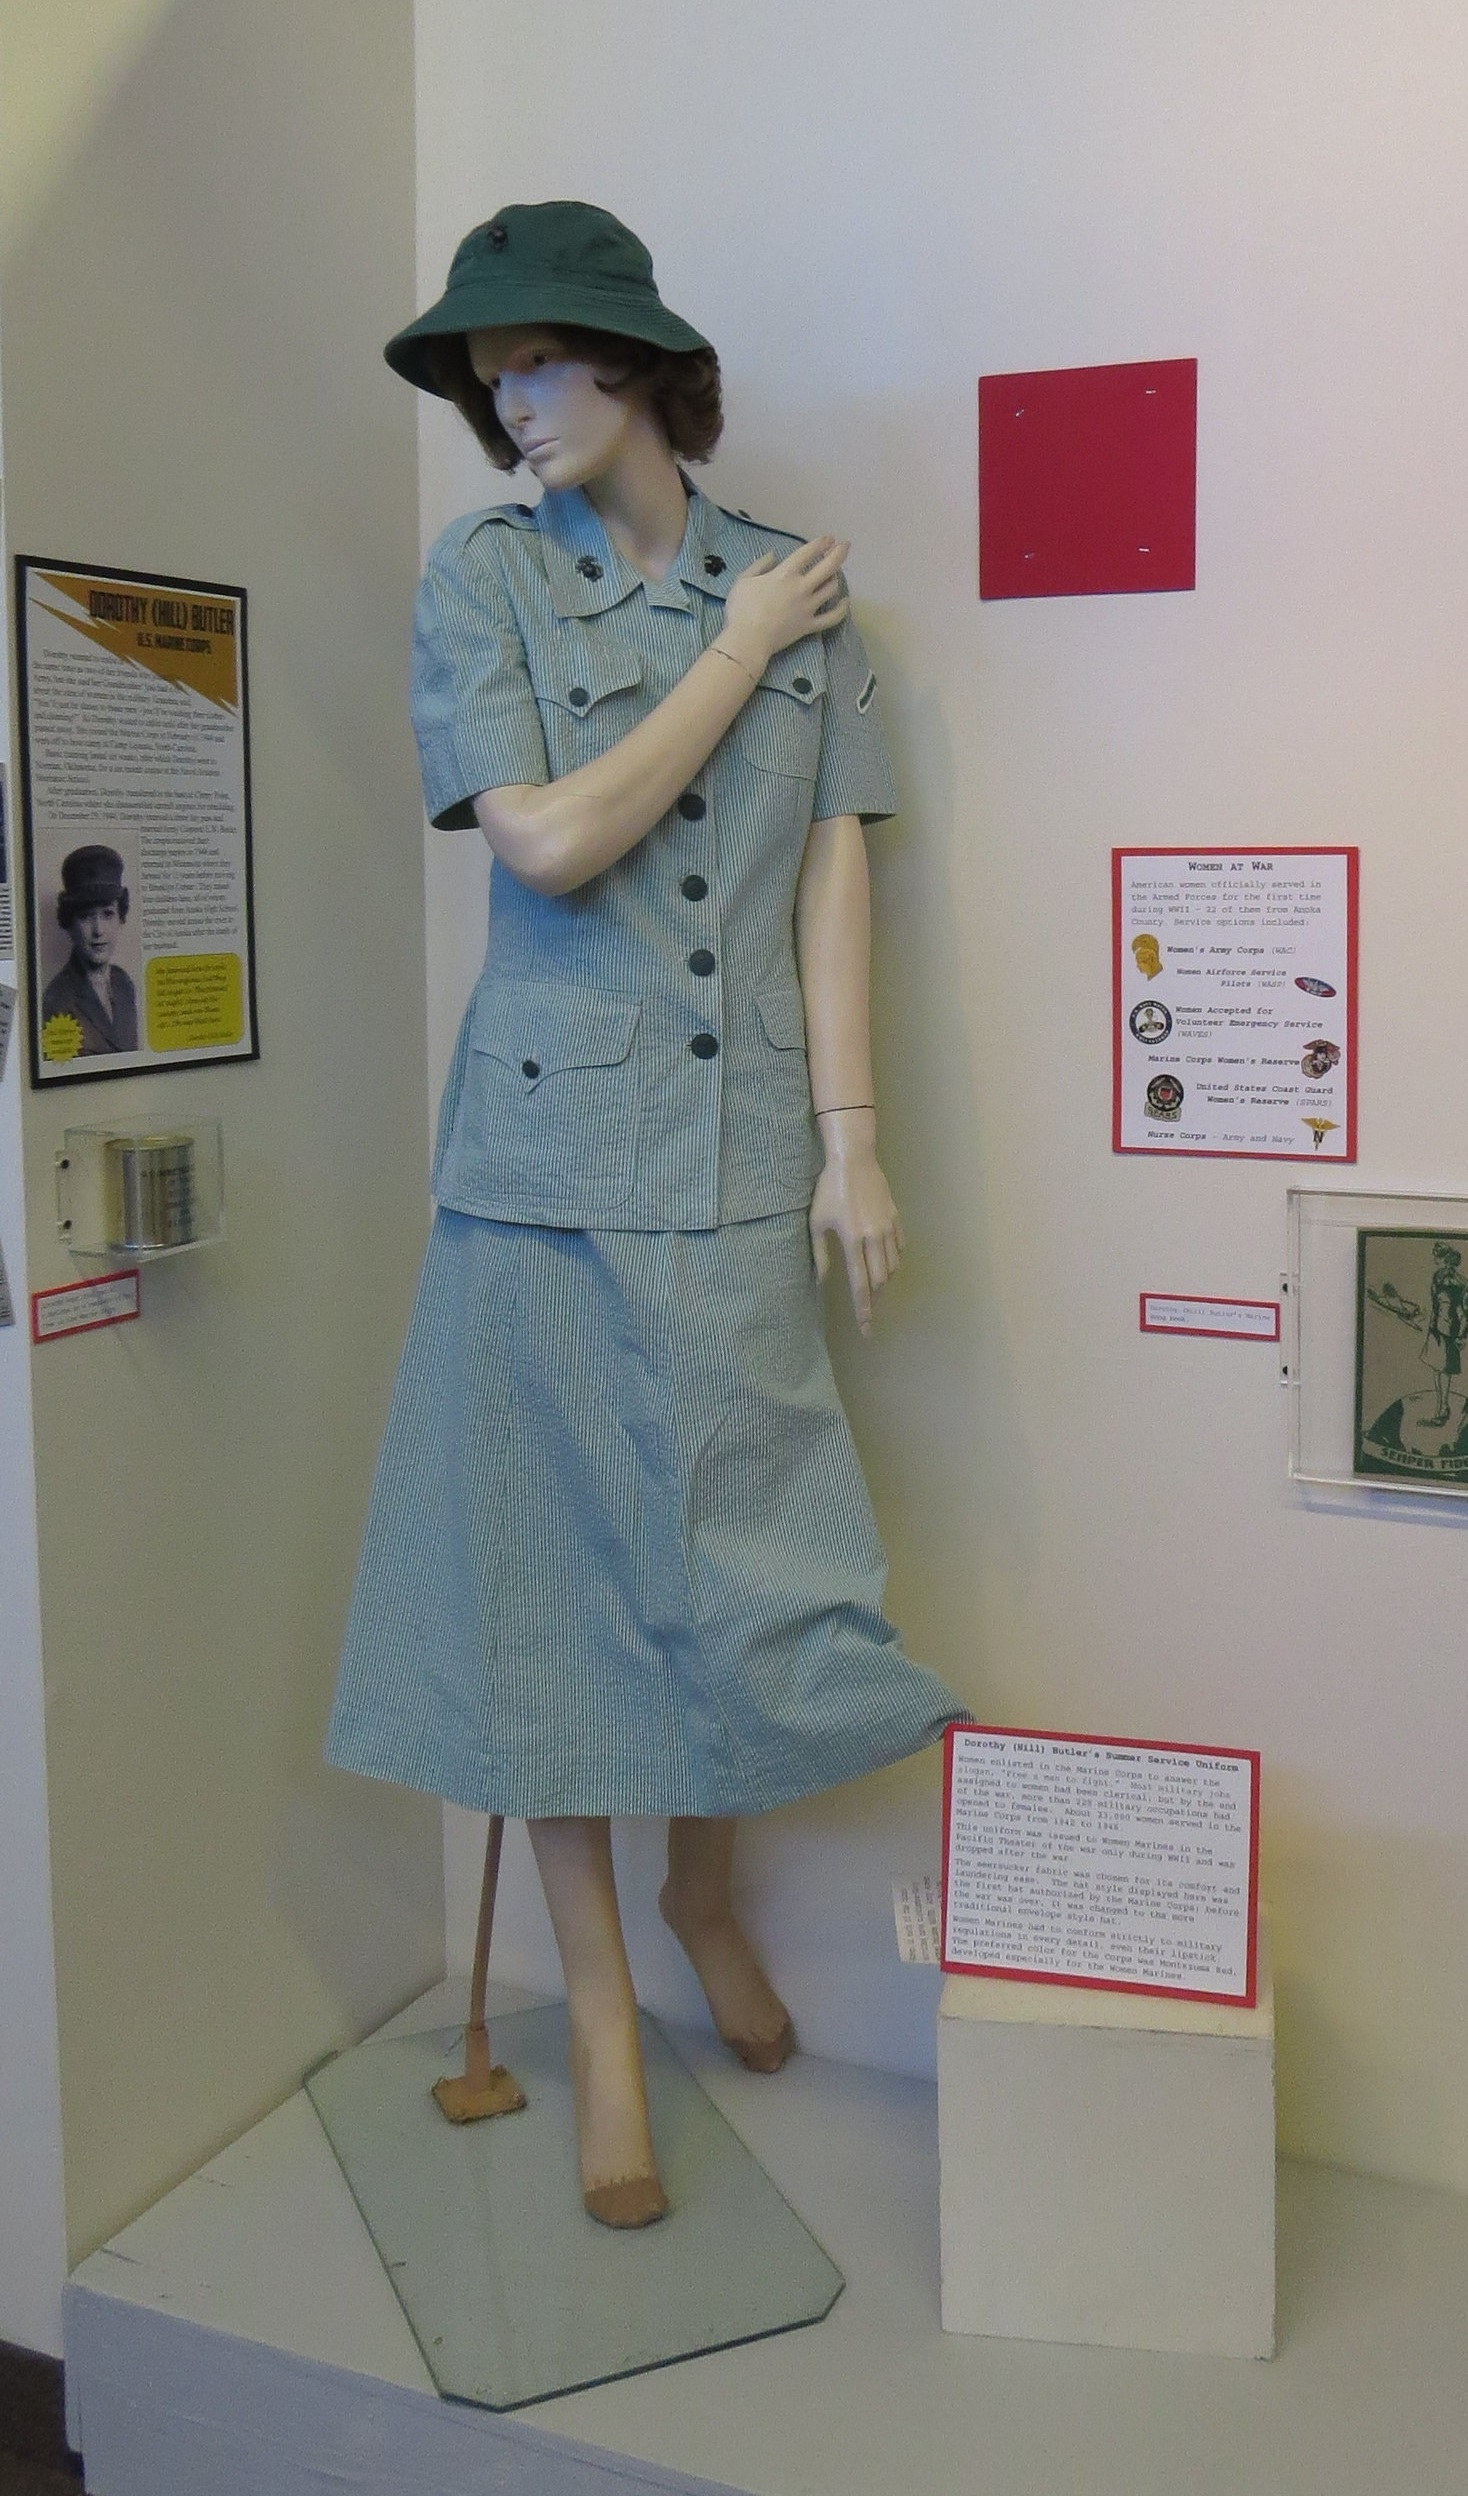 """Dorothy (Hill) Butler's Summer Service Uniform   Women enlisted in the Marine Corps in answer to the slogan, """"Free a man to fight."""" Most military jobs assigned to women had been clerical, but by the end of the war, more than 225 military occupations were open to Women Marines. Some 23,000 women served in the Marine Corps from 1942 to 1946. This uniform was issued to Women Marines in the Pacific Theater of the war only during WWII. This style of uniform was dropped after the war. The seersucker fabric was chosen for its comfort and laundering ease. The hat style here was the first hat authorized by the Marine Corps; it was changed to the more traditional envelope style before the war was over. Women Marines had to conform strictly to military regulations in every detail, even their lipstick. The preferred color for the Corps was Montezuma Red, developed especially for the Women Marines."""